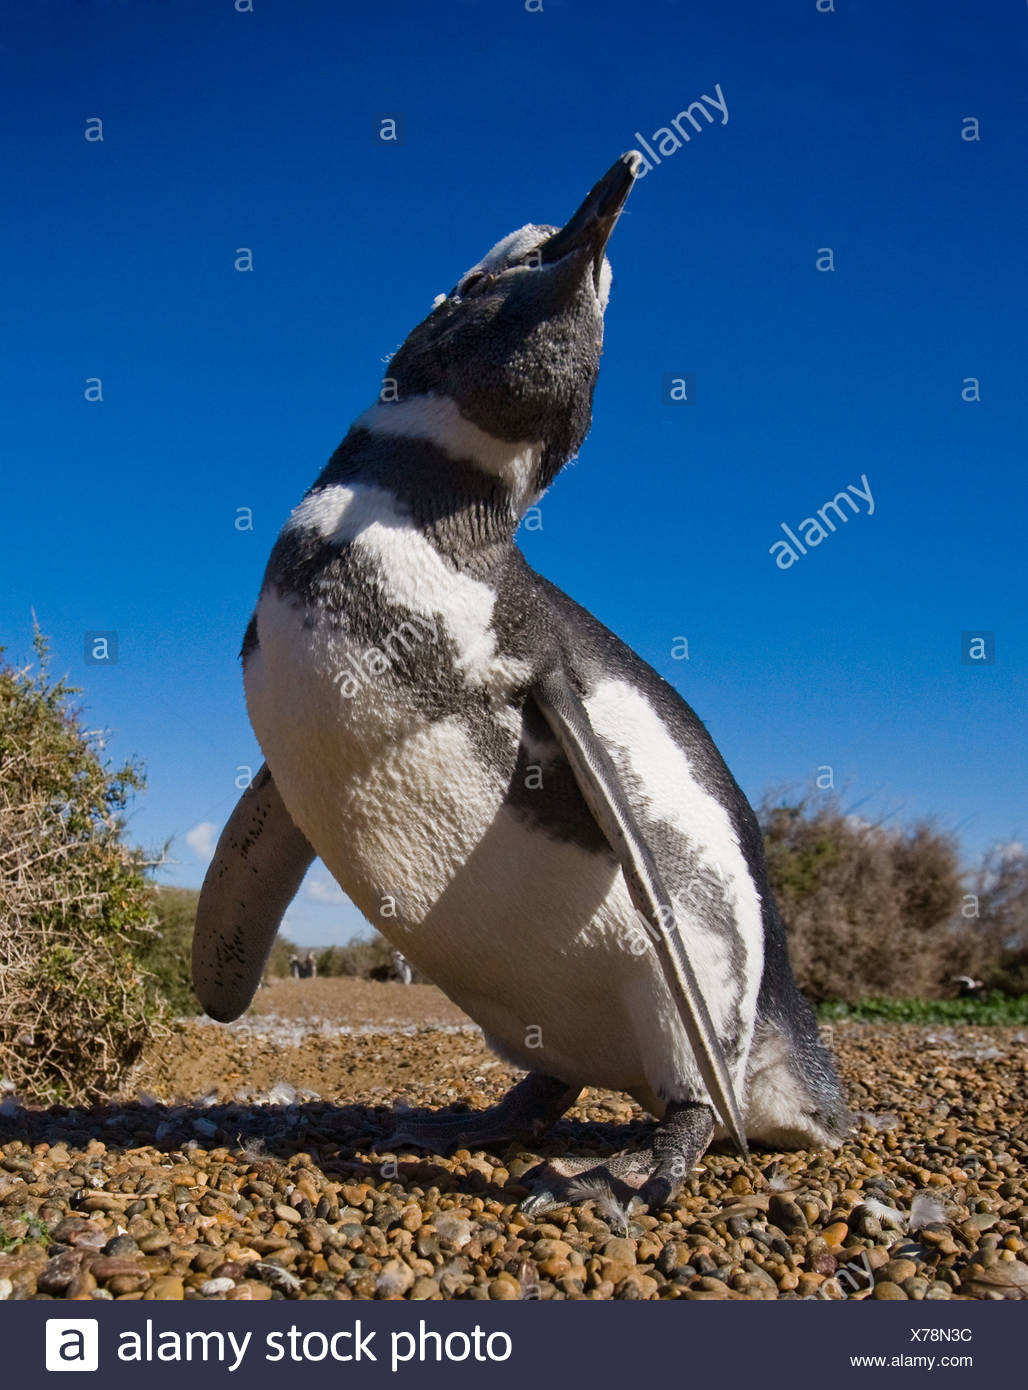 Magellan penguin on the beach, Valdes peninsula, Argentina (Spheniscus magellanicus) - Stock Image